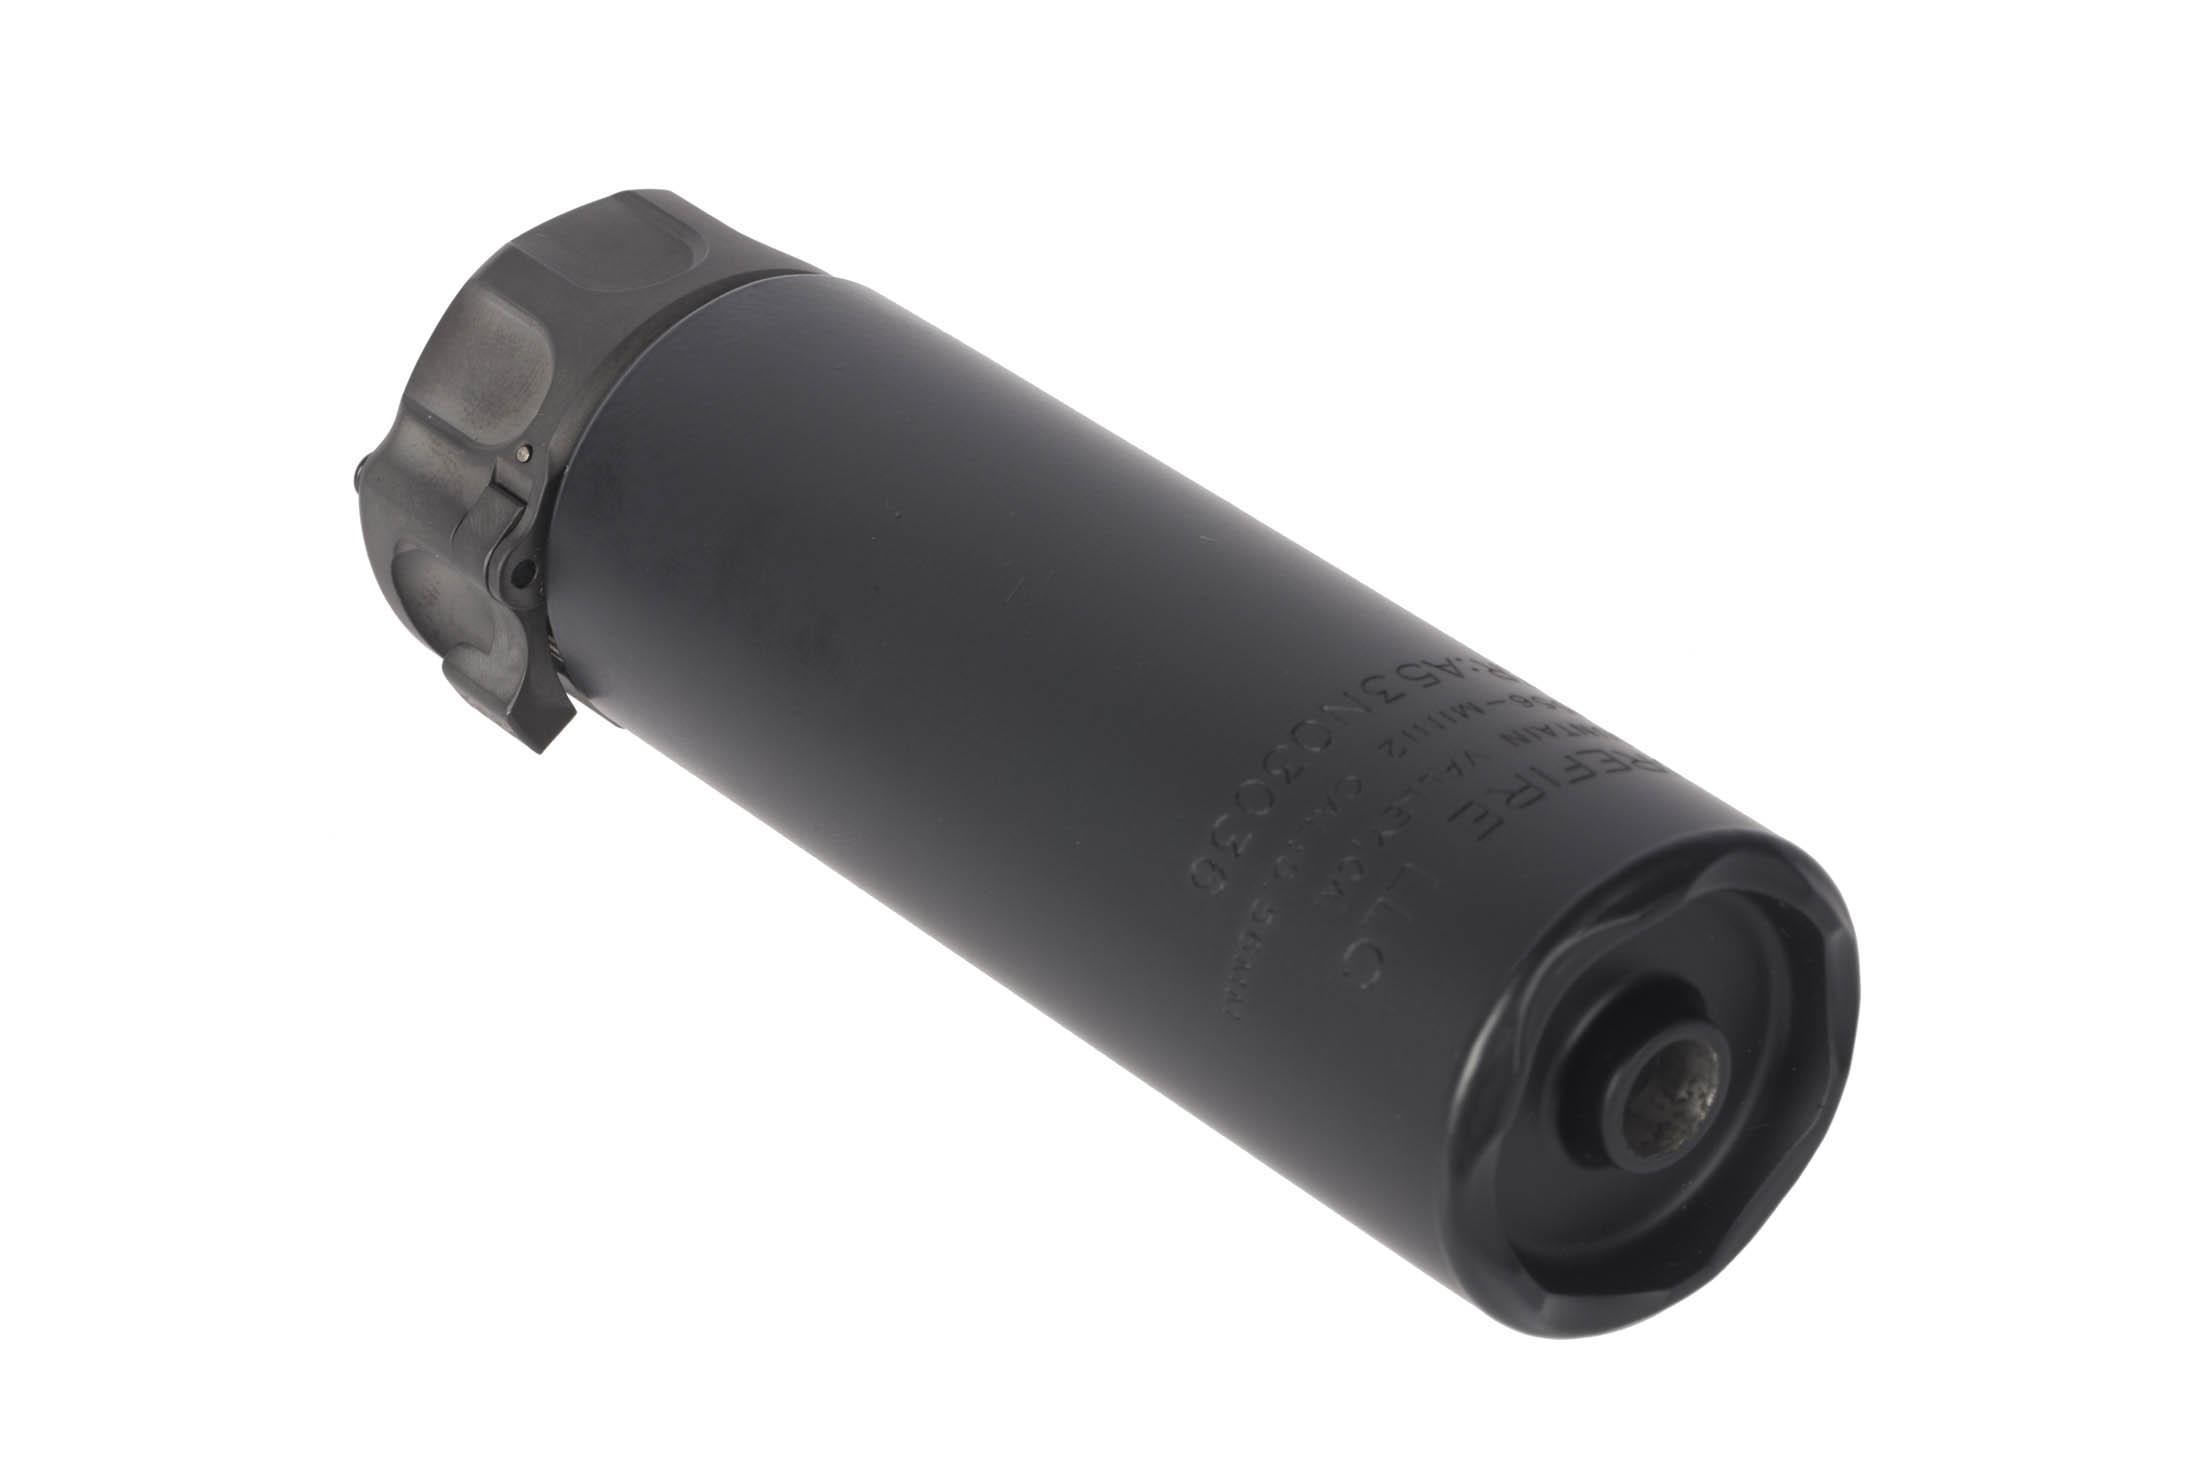 SureFire SOCOM 2 Mini 5.56 Sound Suppressor with black Cerakote finish